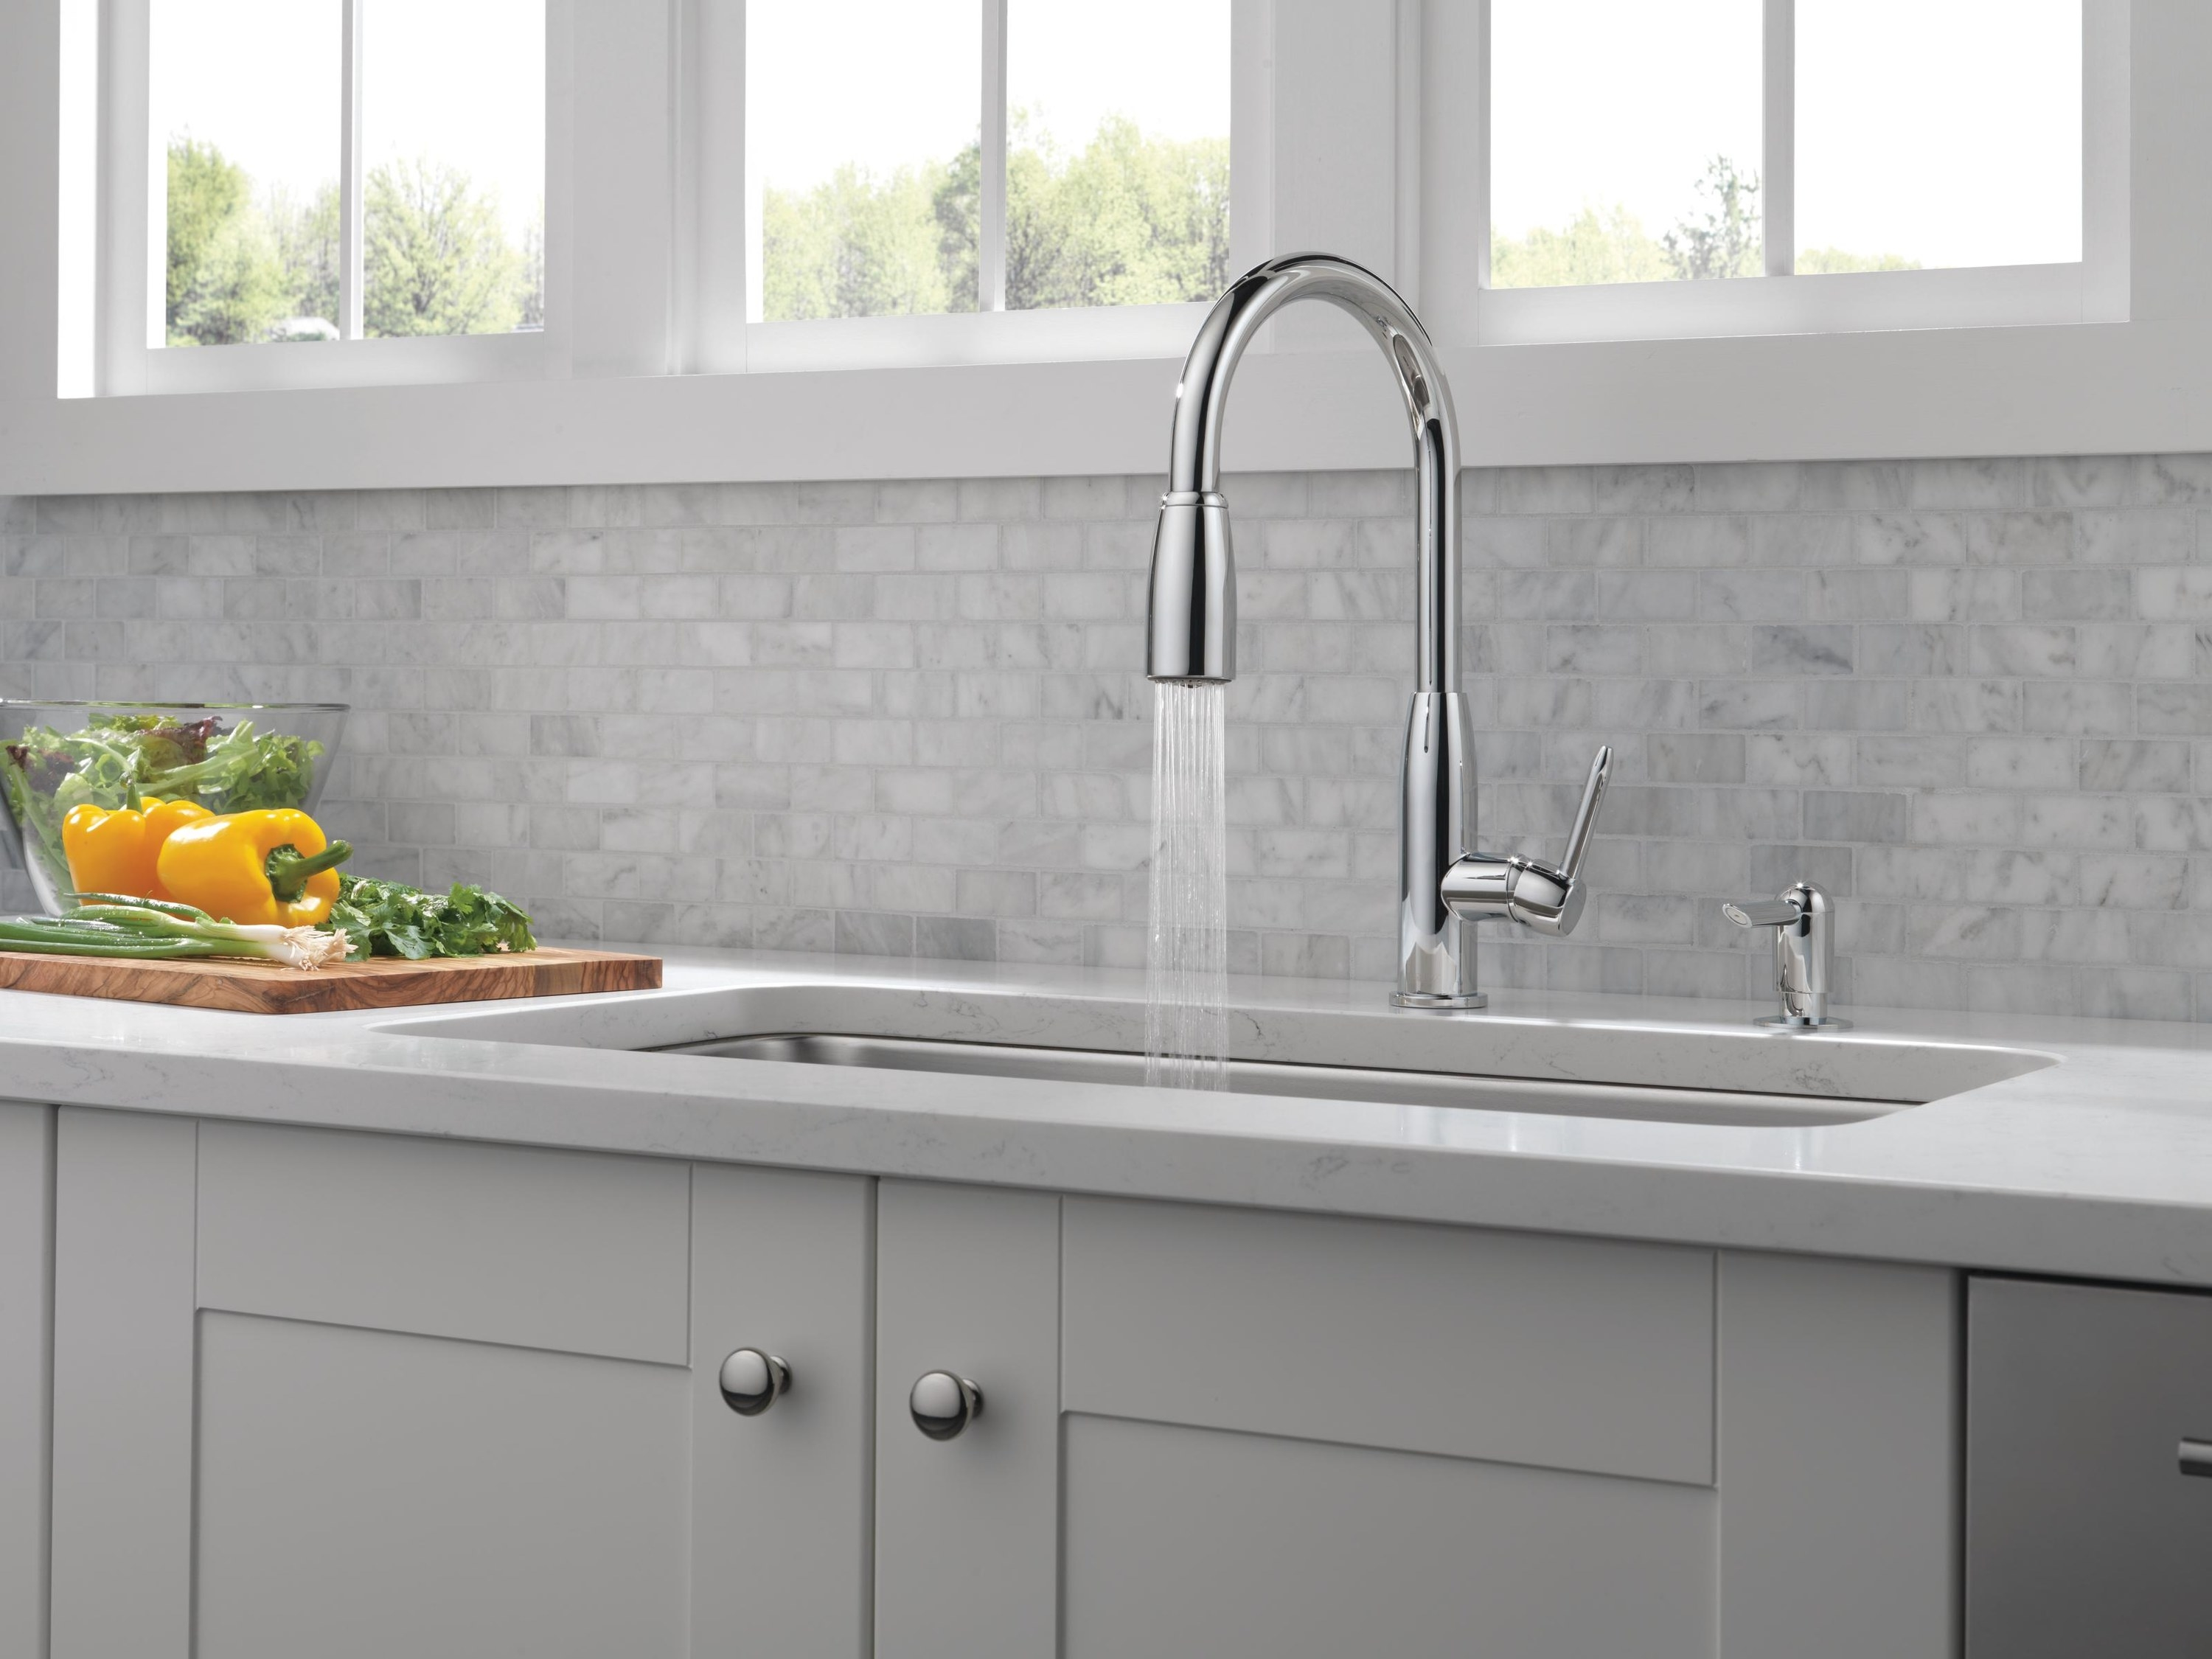 chrome single handle faucet with water flowing out of it